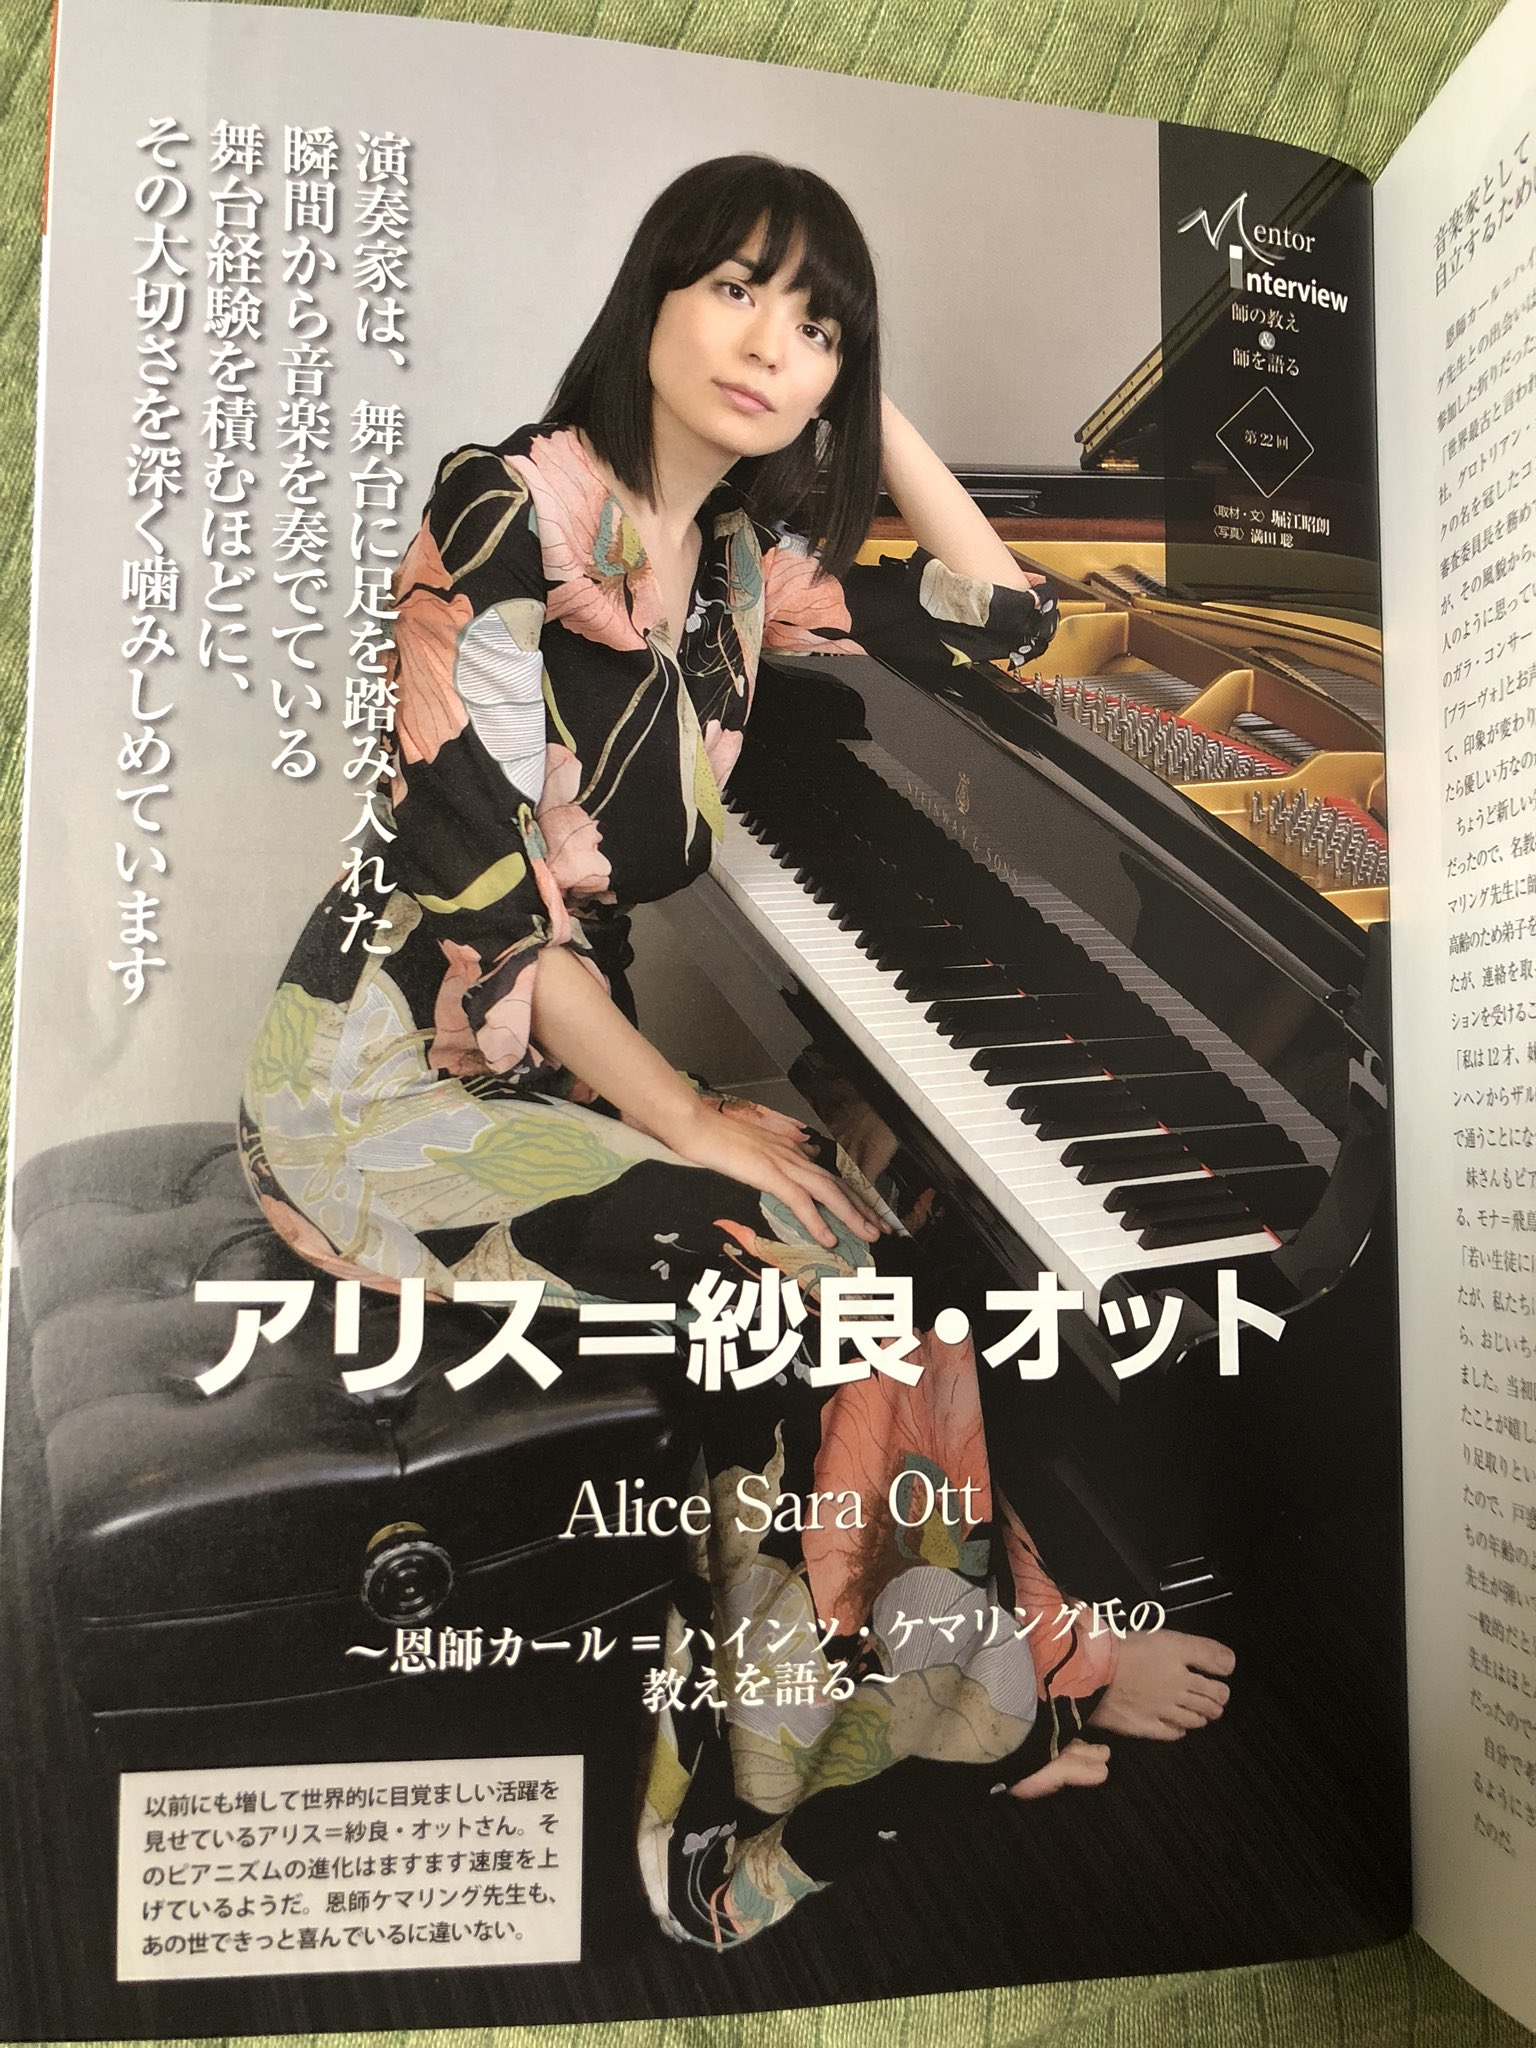 Reloaded twaddle – RT @DGclassics: On her new album Nightfall, @AliceSaraOtt takes a very persona...